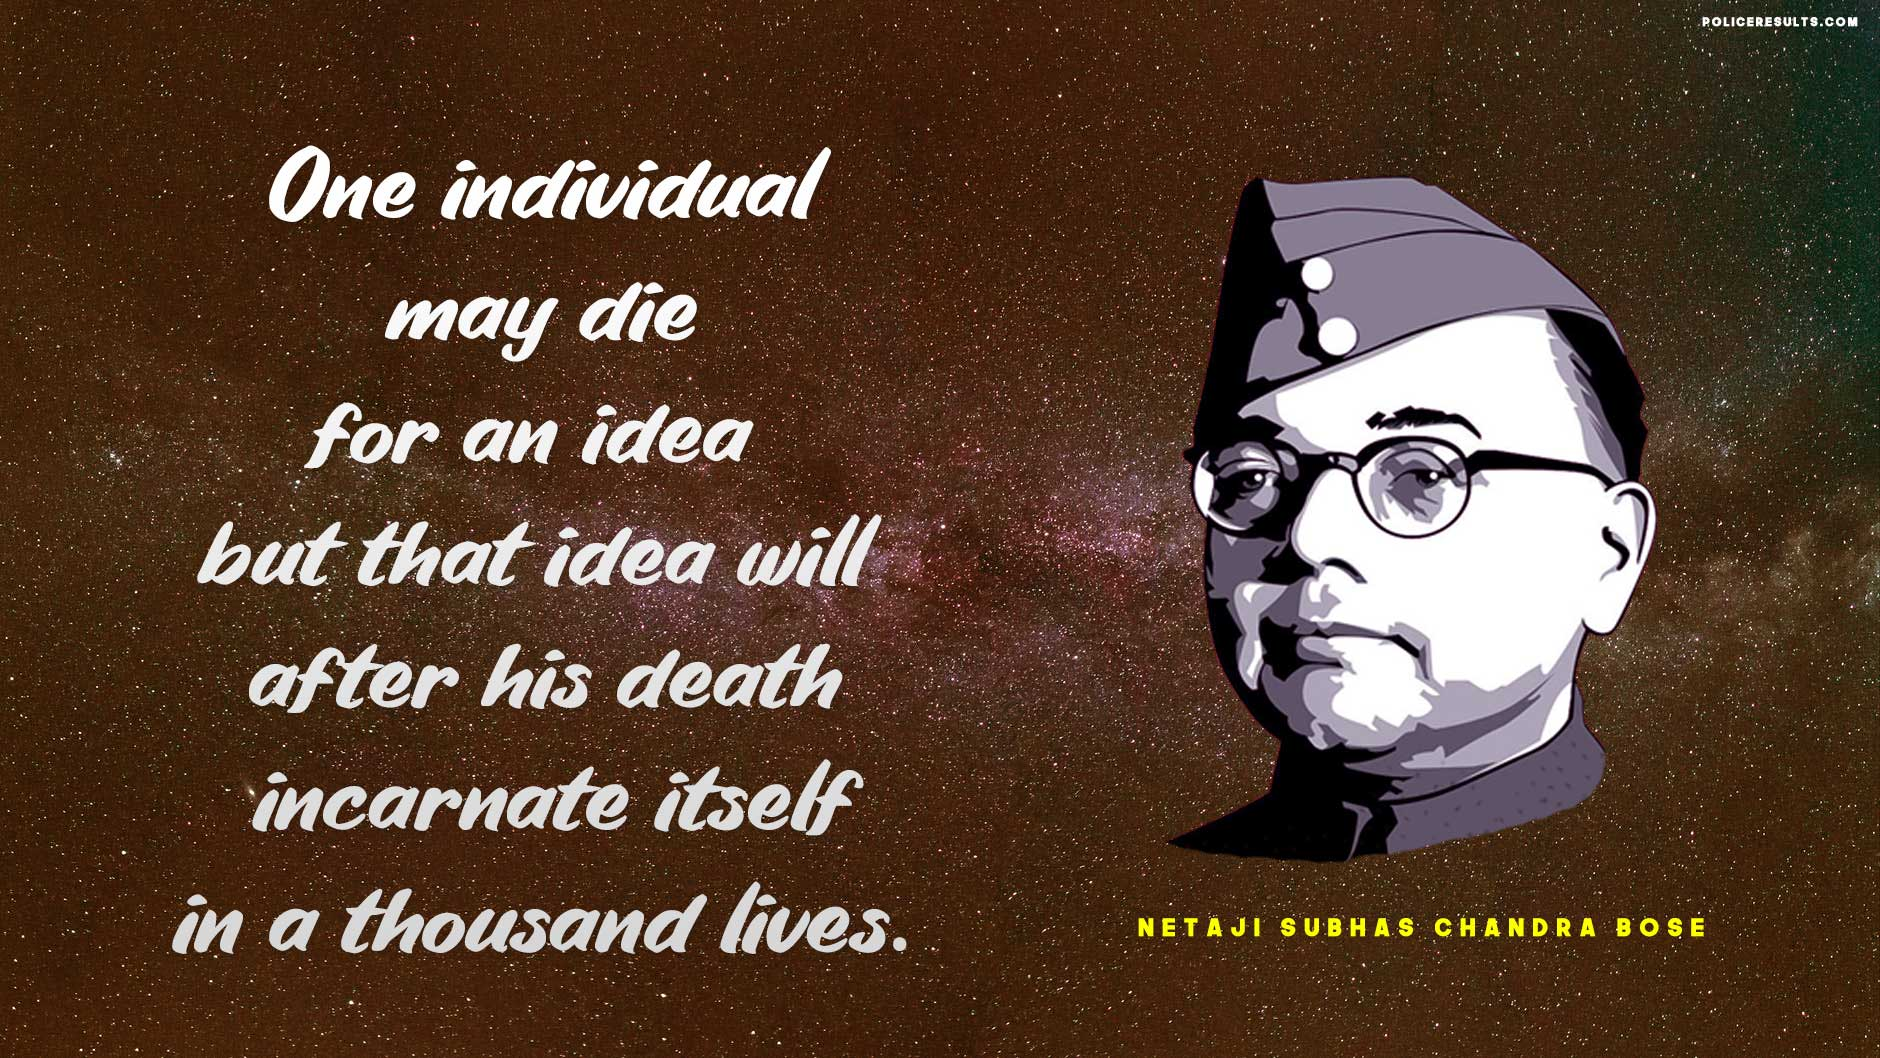 Best Slogans of Netaji Subhas Chandra Bose